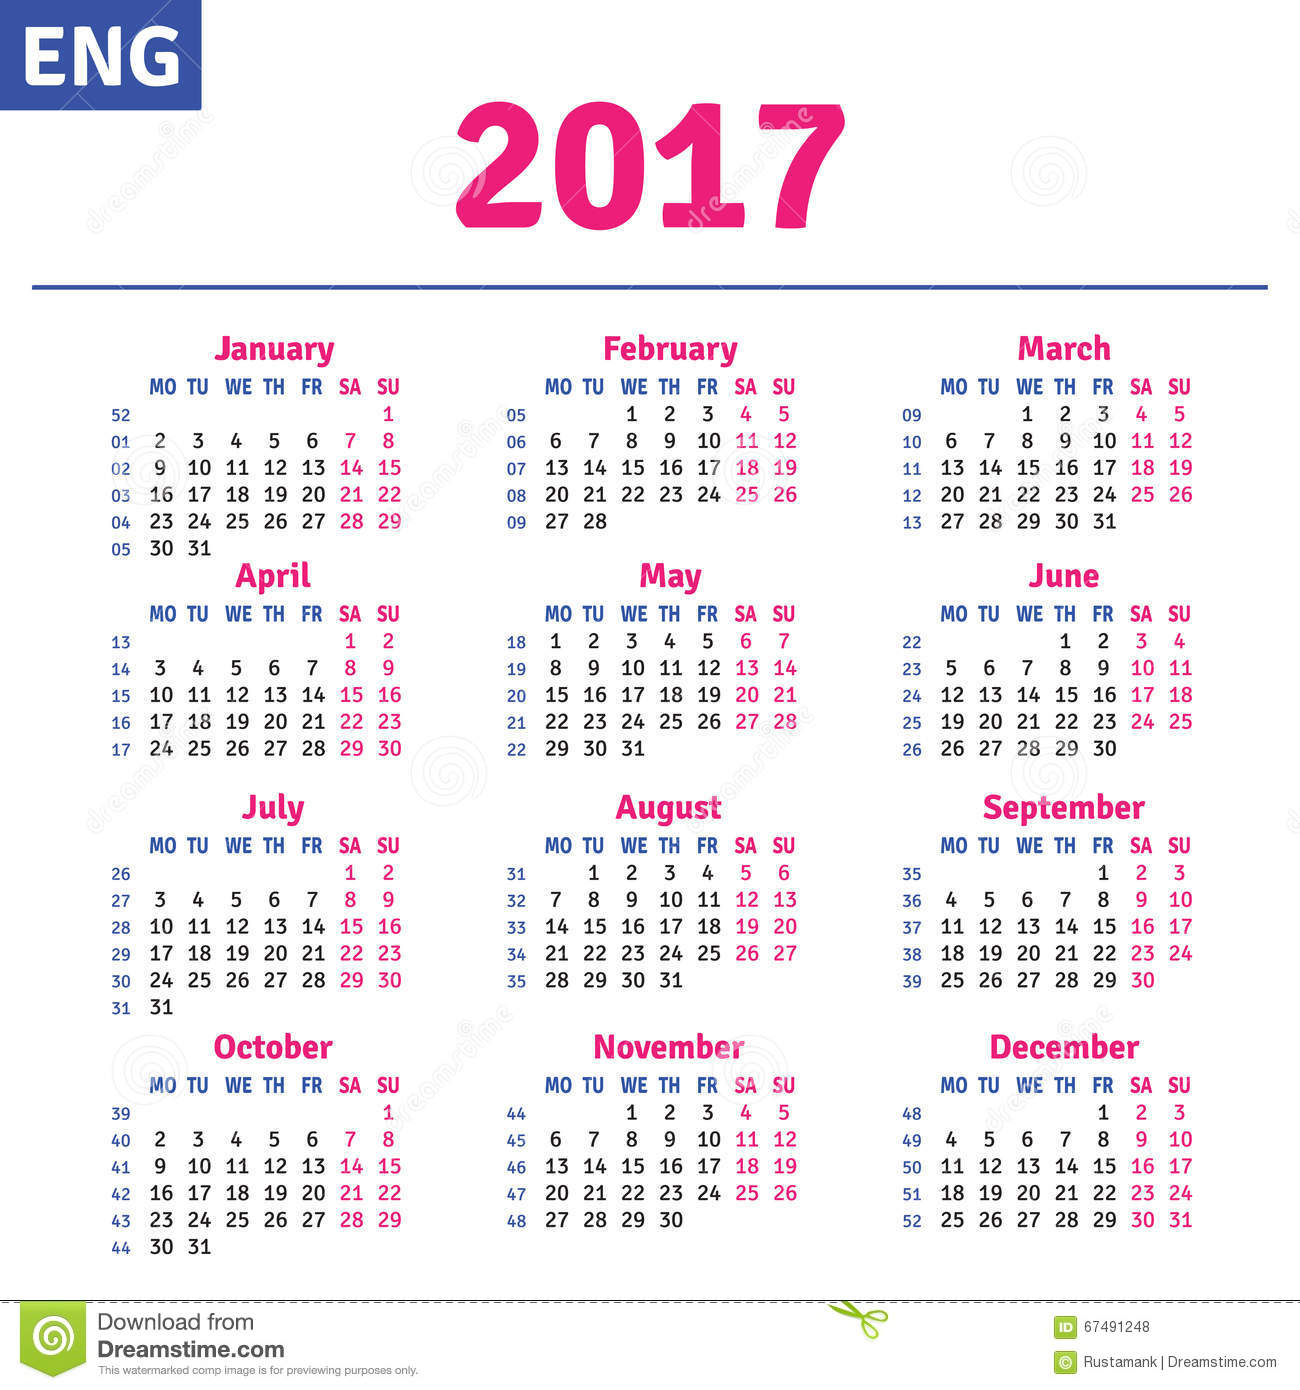 Calendario Inglés 2017 Fotos Stock – 275 Calendario Inglés 2017 ...